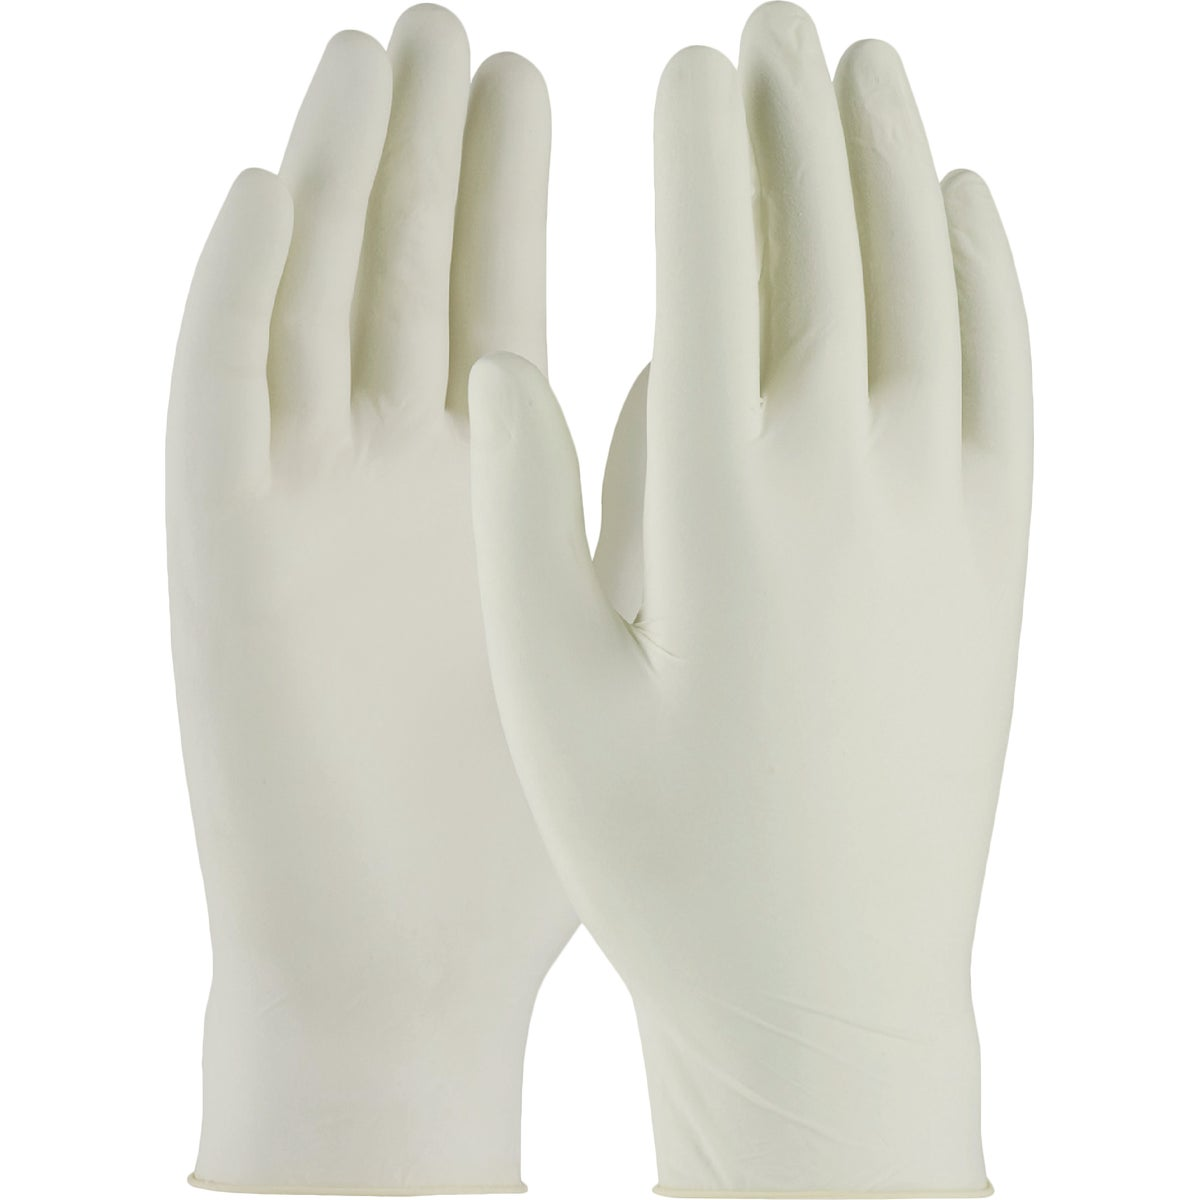 XL POWDERED LATEX GLOVES - 2500I/XL by West Chester Incom